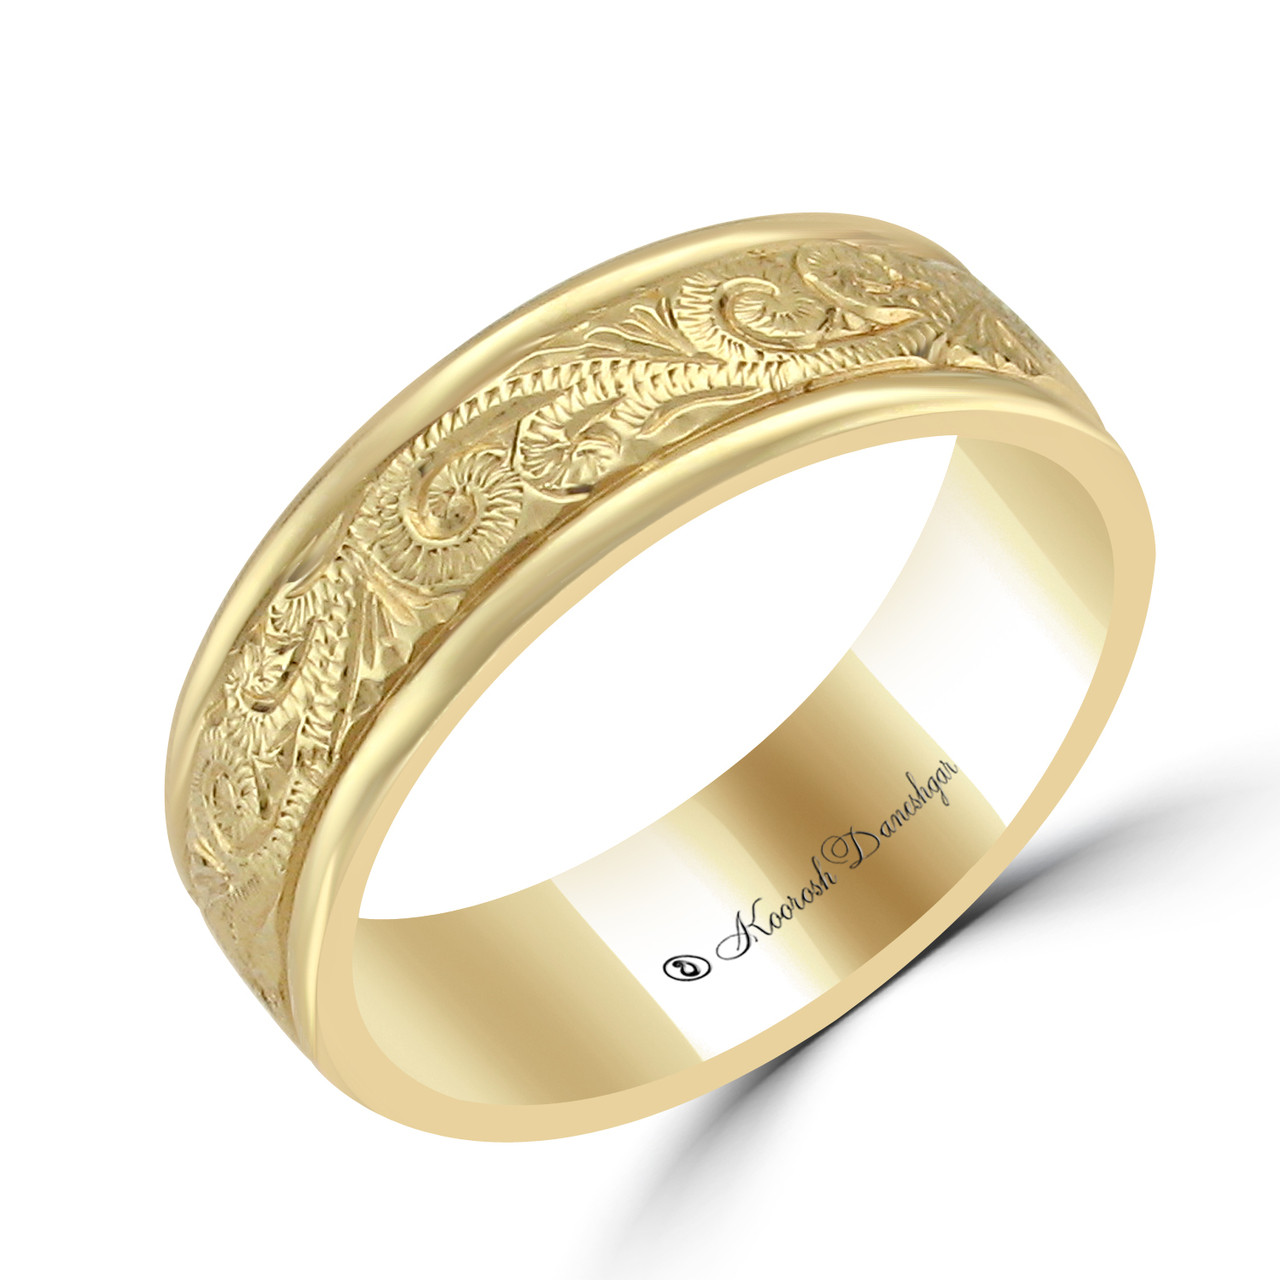 polished engraving wedding gold ring solid laser band data rings laserengraving custom mens infinity edges women bands for gift anniversary width men grooved dsc la engraved